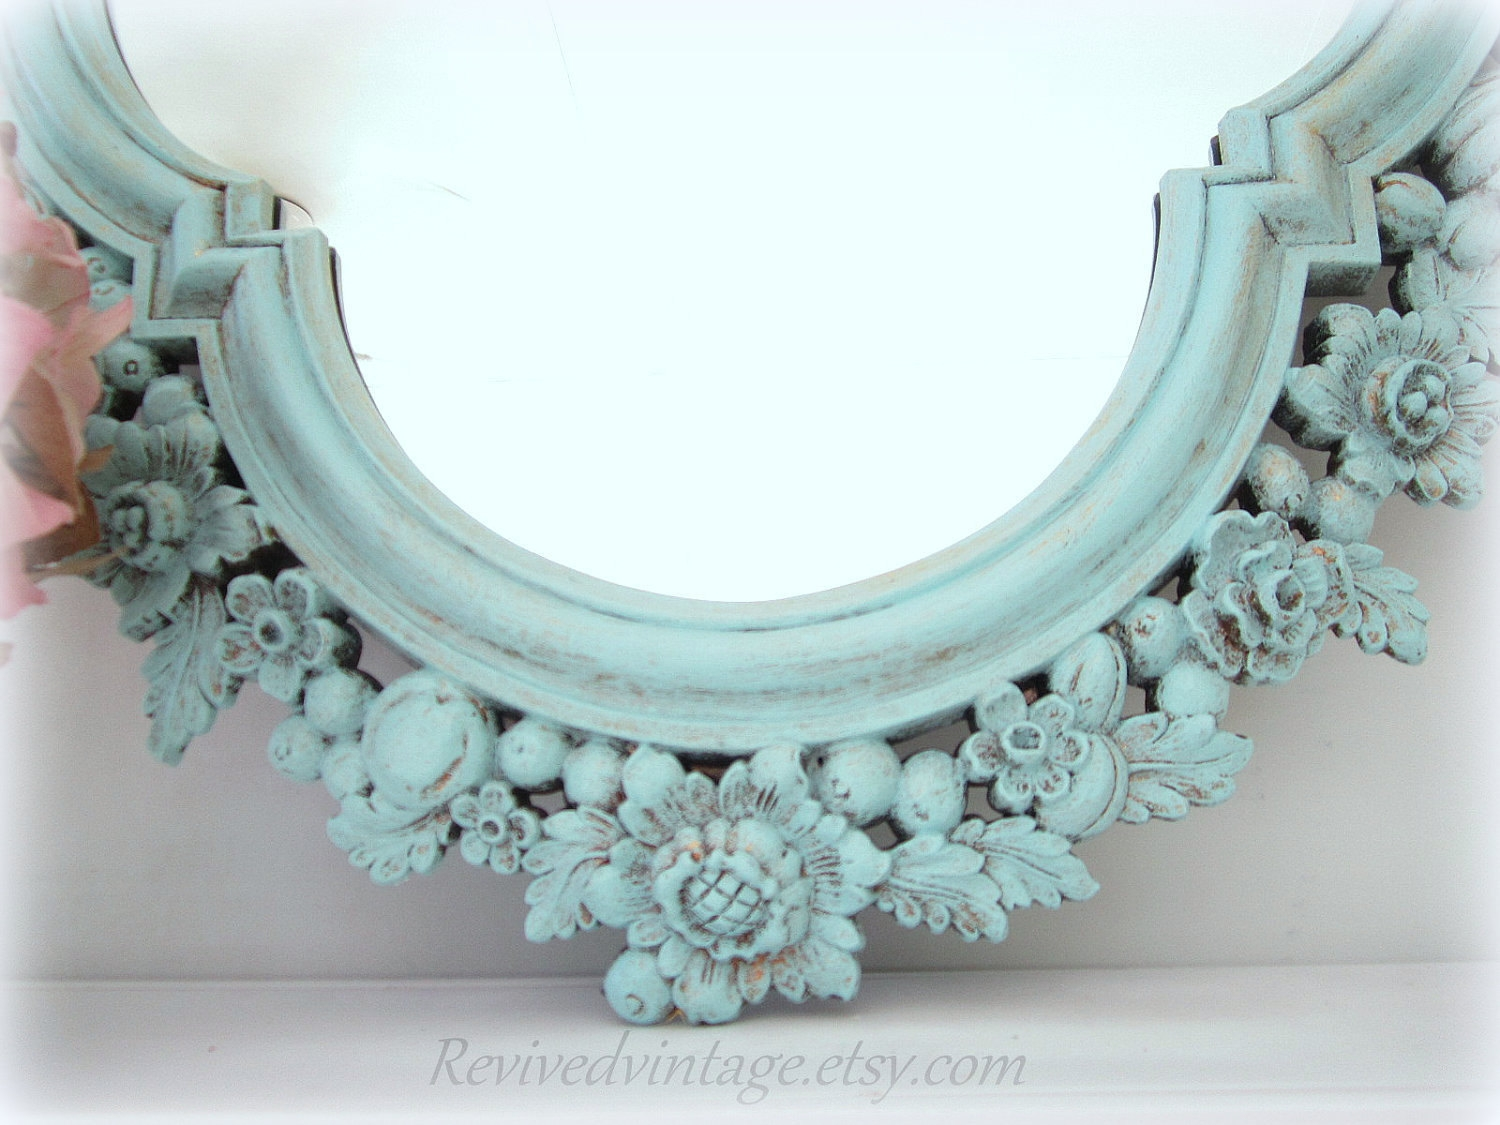 Decorative Vintage Mirrors For Sale Large Mirror Shab Chic Inside Vintage Mirrors For Sale (Image 9 of 15)